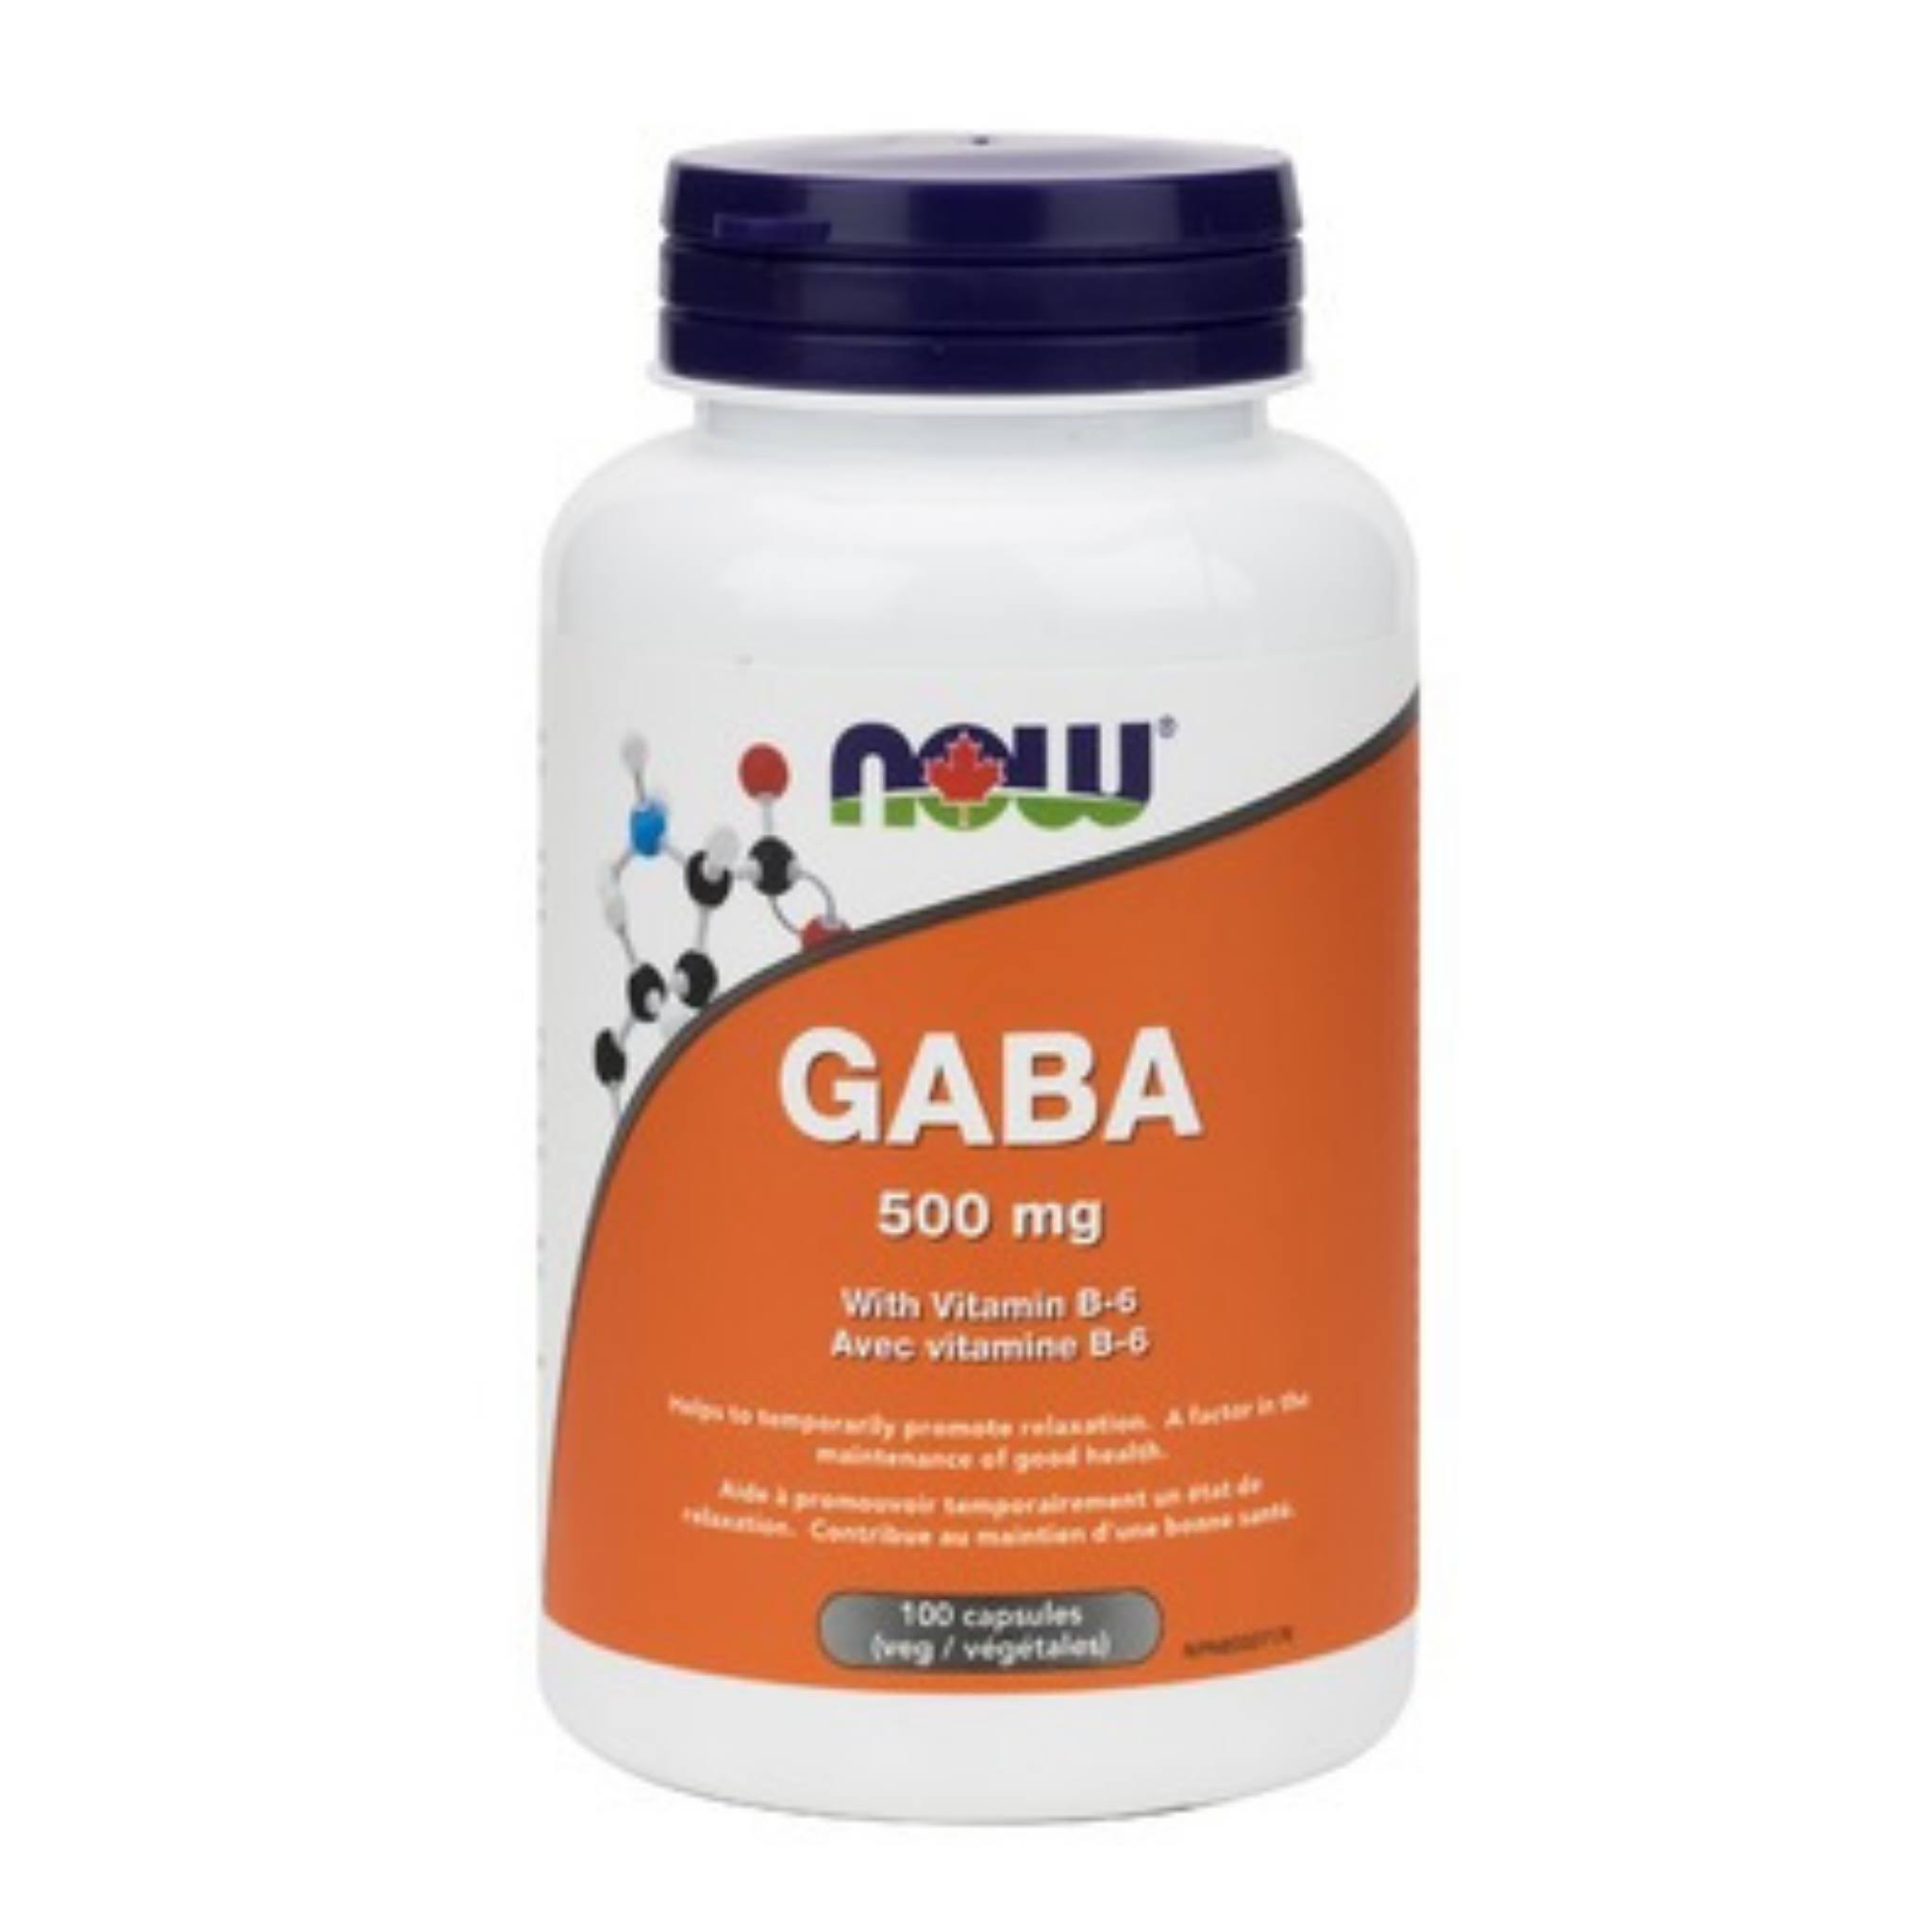 Now Gaba Supplement - 500mg, with Vit B-6, 100 Capsules